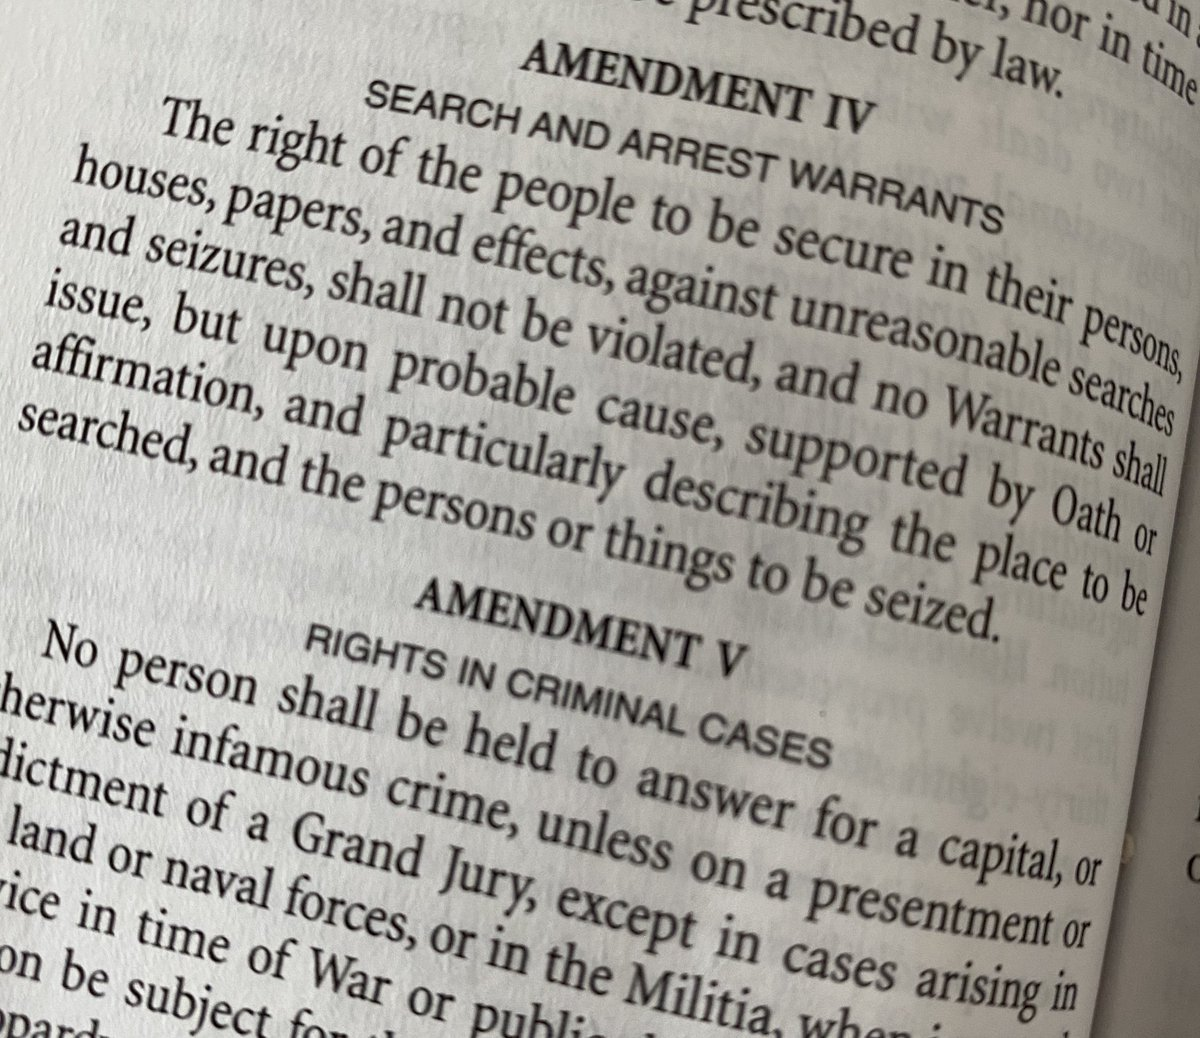 @Veeshandle @TomNamako @JasonLeopold There might be some people gathering intelligence on what they choose to do to our fellow Americans, too.😉 Not illegal: Protesting peacefully, free speech Illegal: Warrantless searches that violate the #FourthAmendment #DocumentEverything #StaySafe #Vote